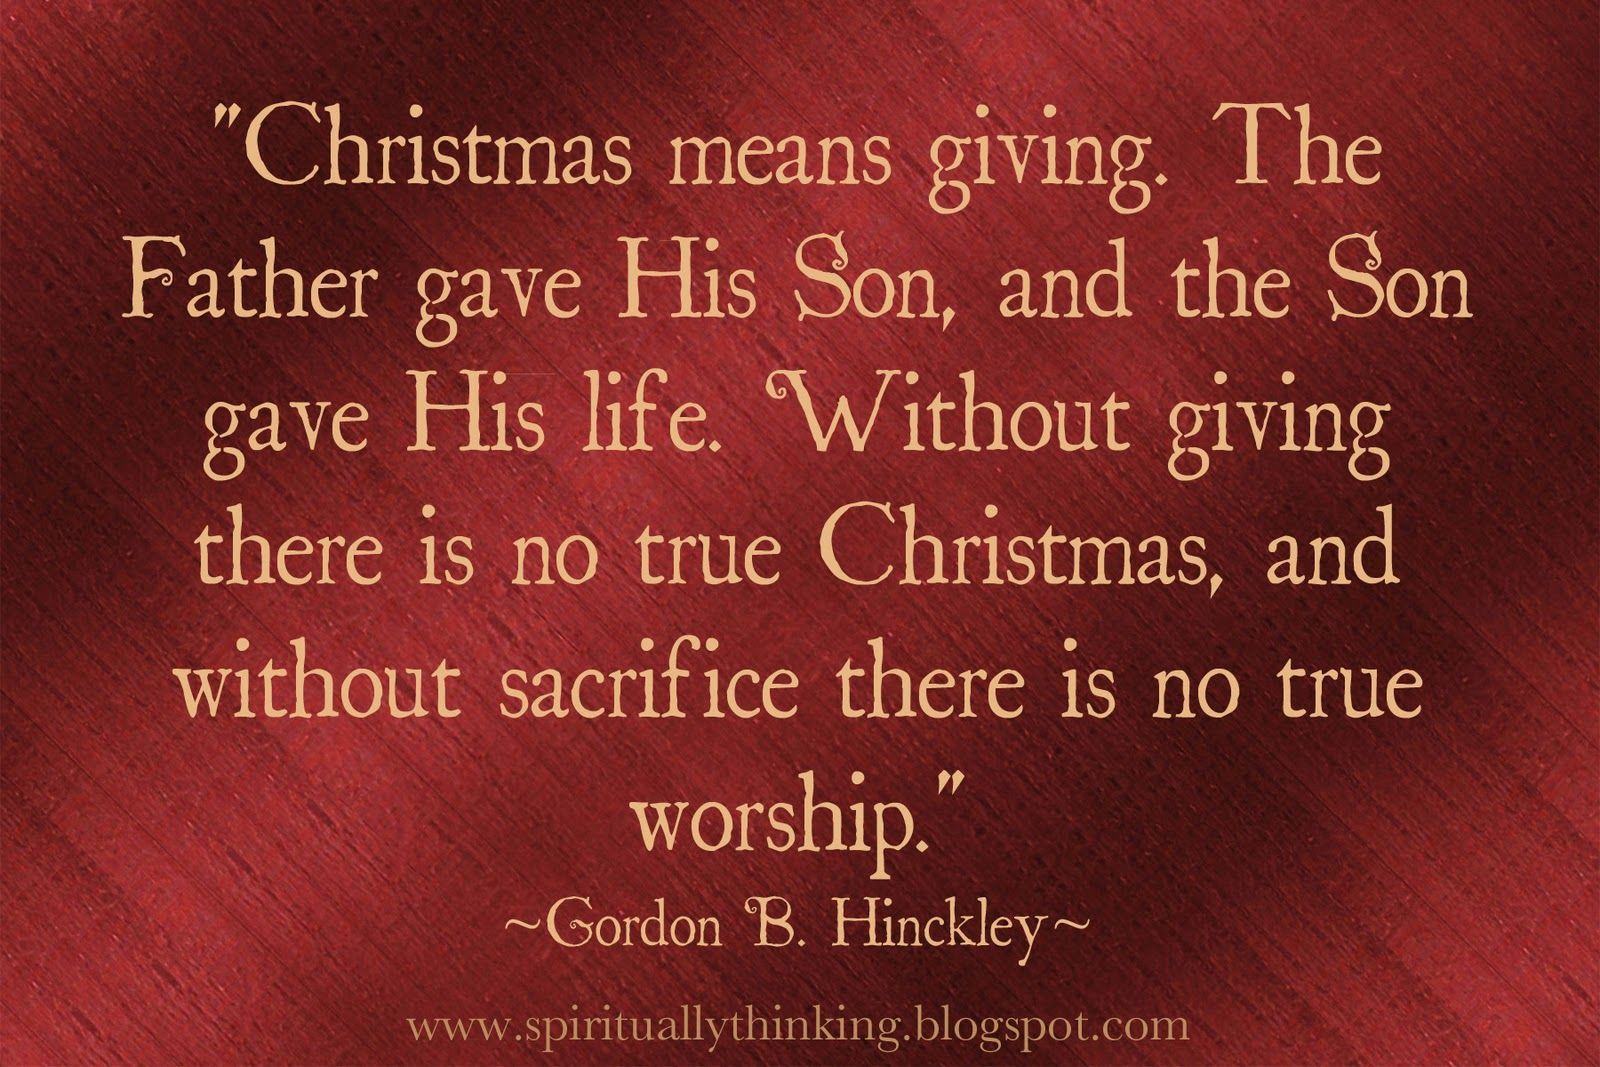 Christmas Giving Quotes.Christmas Quotes About Giving And Sharing Christmas